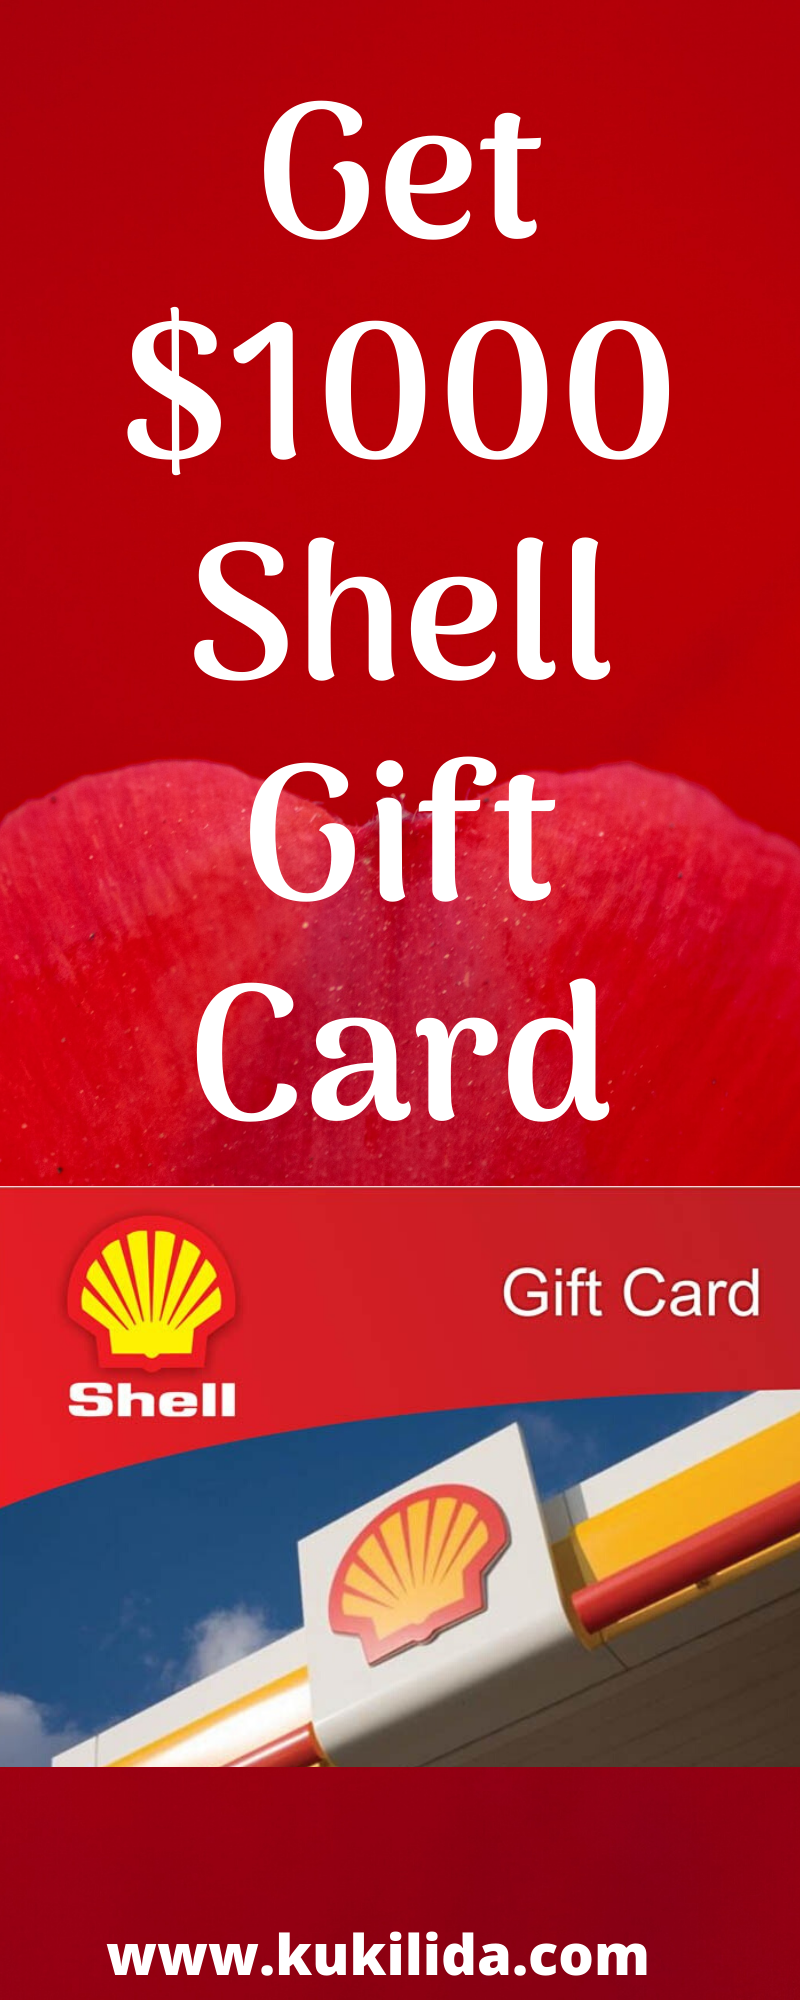 Get 1000 Shell Gift Card How To Get 1000 Shell Gift Card Click The Link Below To Get More Information In 2020 Shell Gift Card Gas Gift Cards Gift Card Giveaway